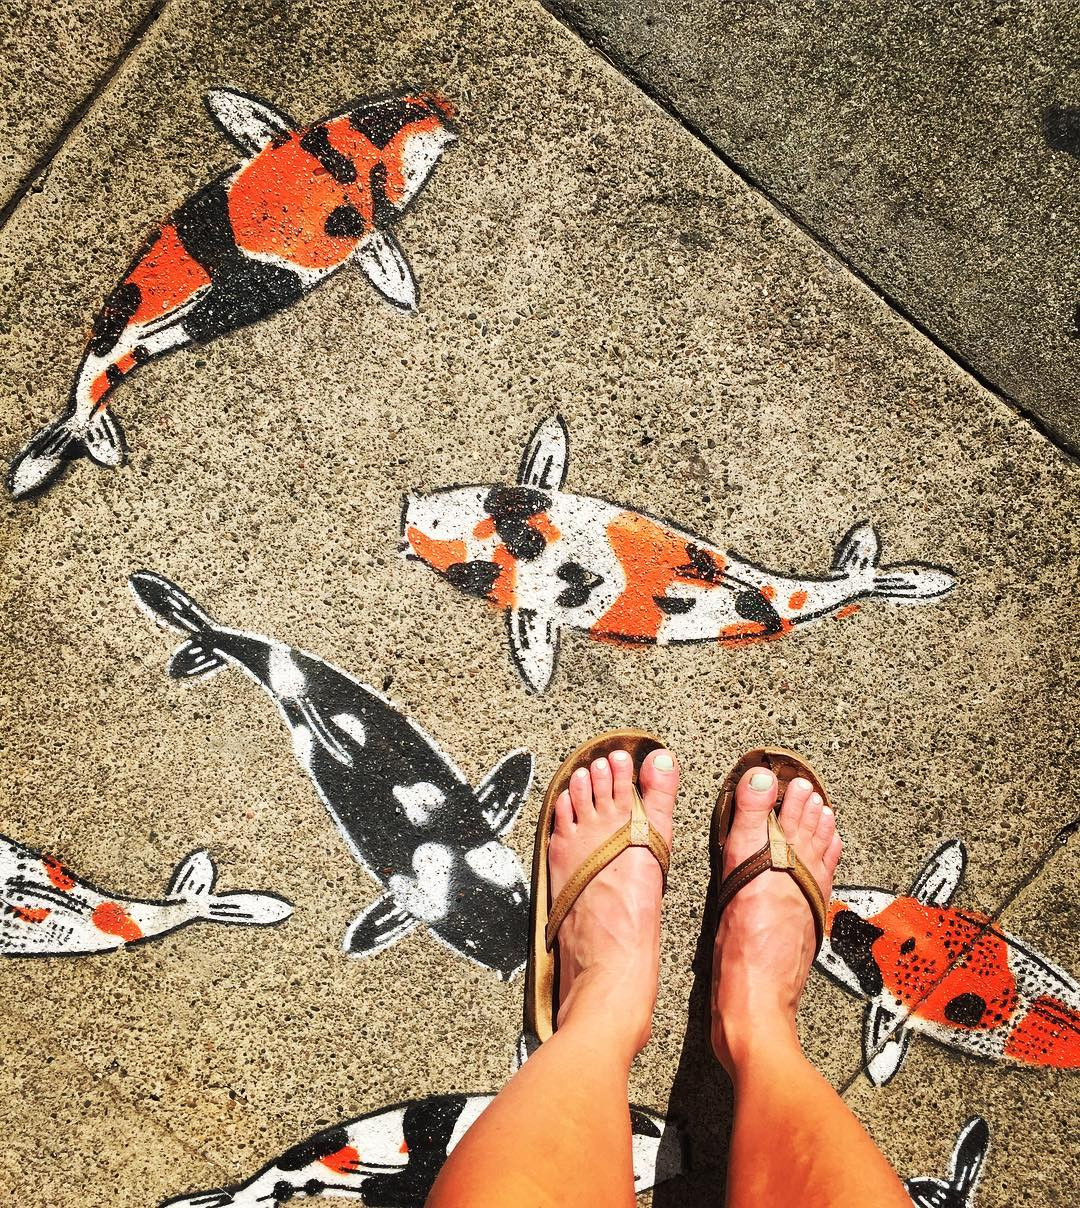 Stepping into good fortune, success, prosperity, longevity, courage, ambition, and perseverance. ⚡️Feeling the Koi Energy ⚡️#koipond #streetart #sanfrancisco